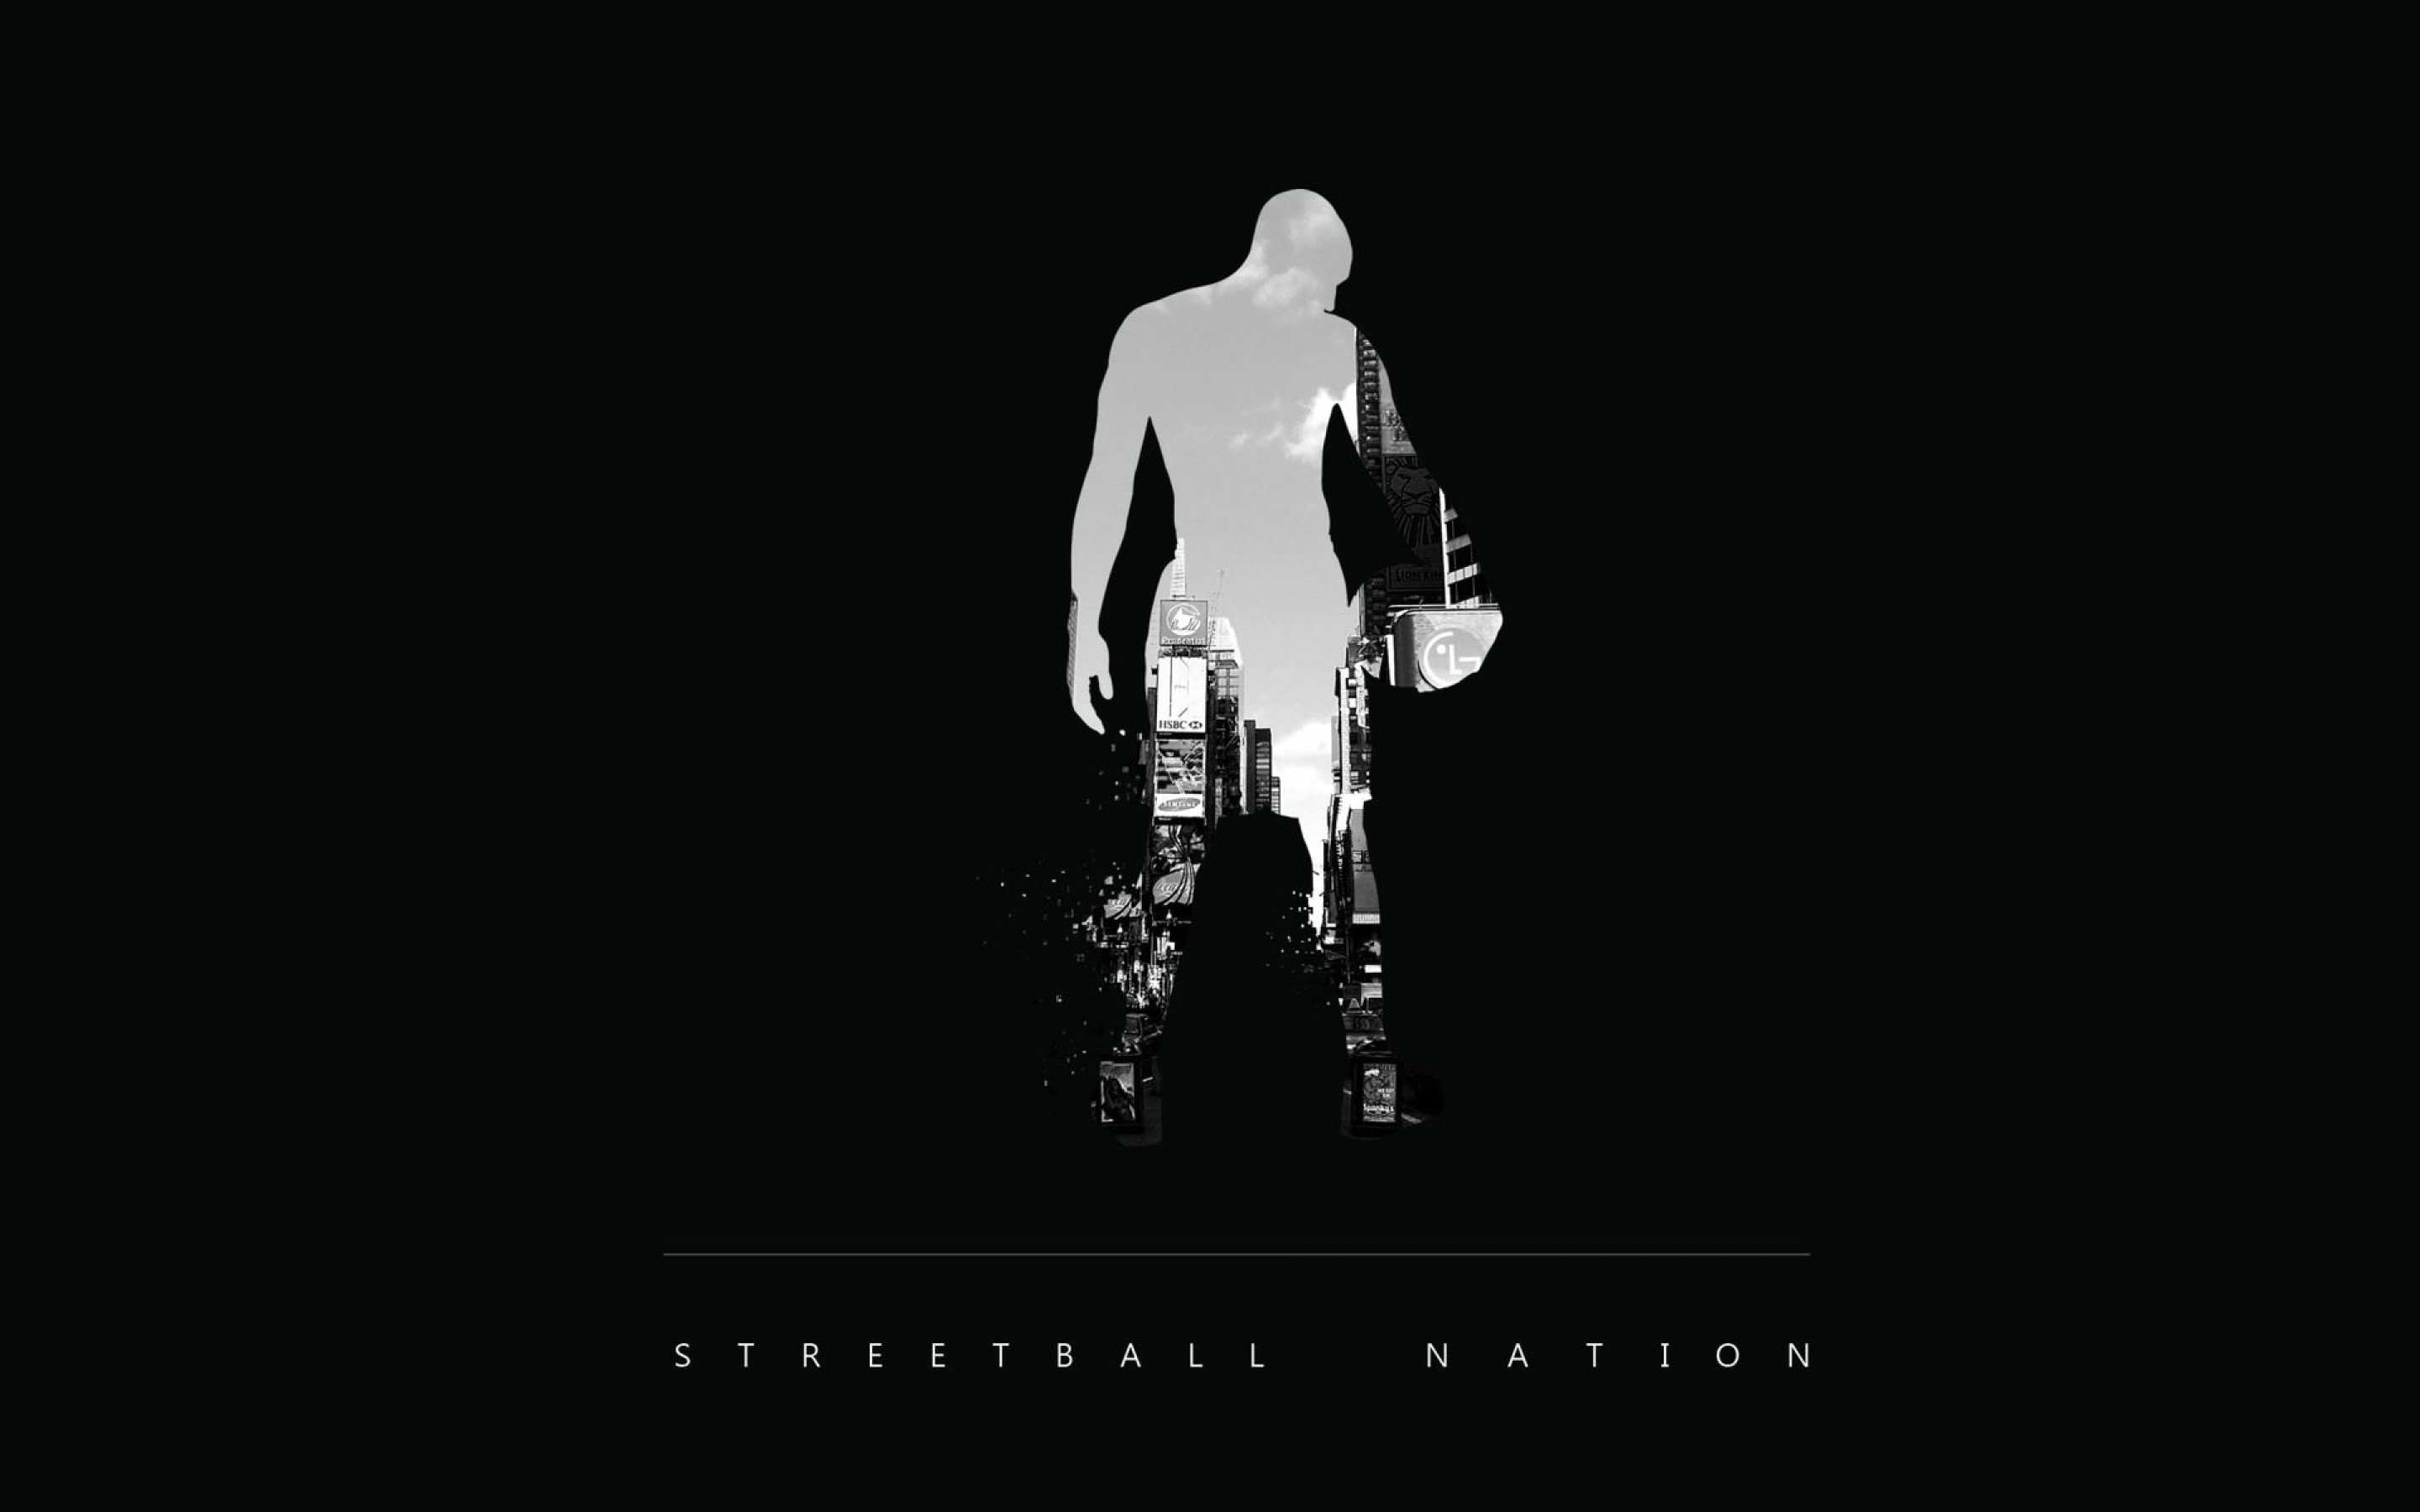 nike streetball nation basketball wallpaper 64290